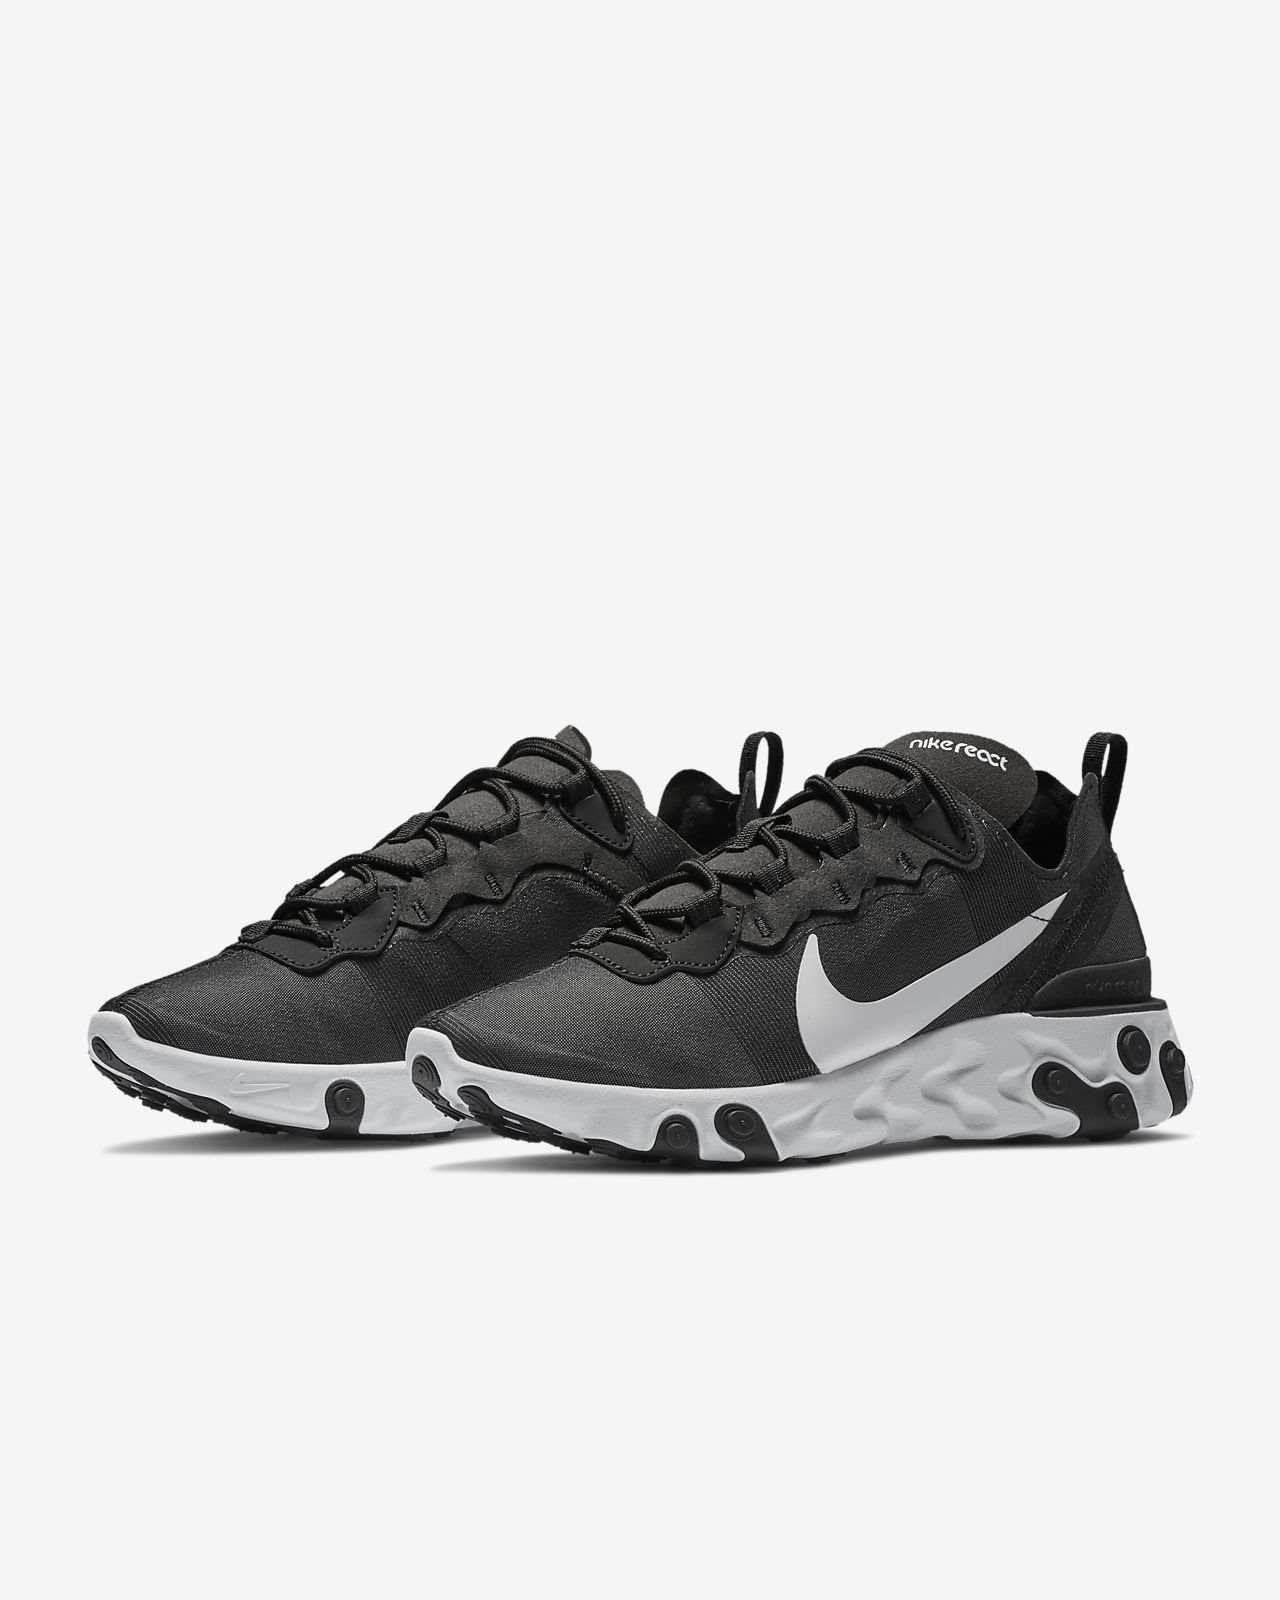 Chaussure 55 Be Femme Nike Element React Pour 6wzq7ax6rn